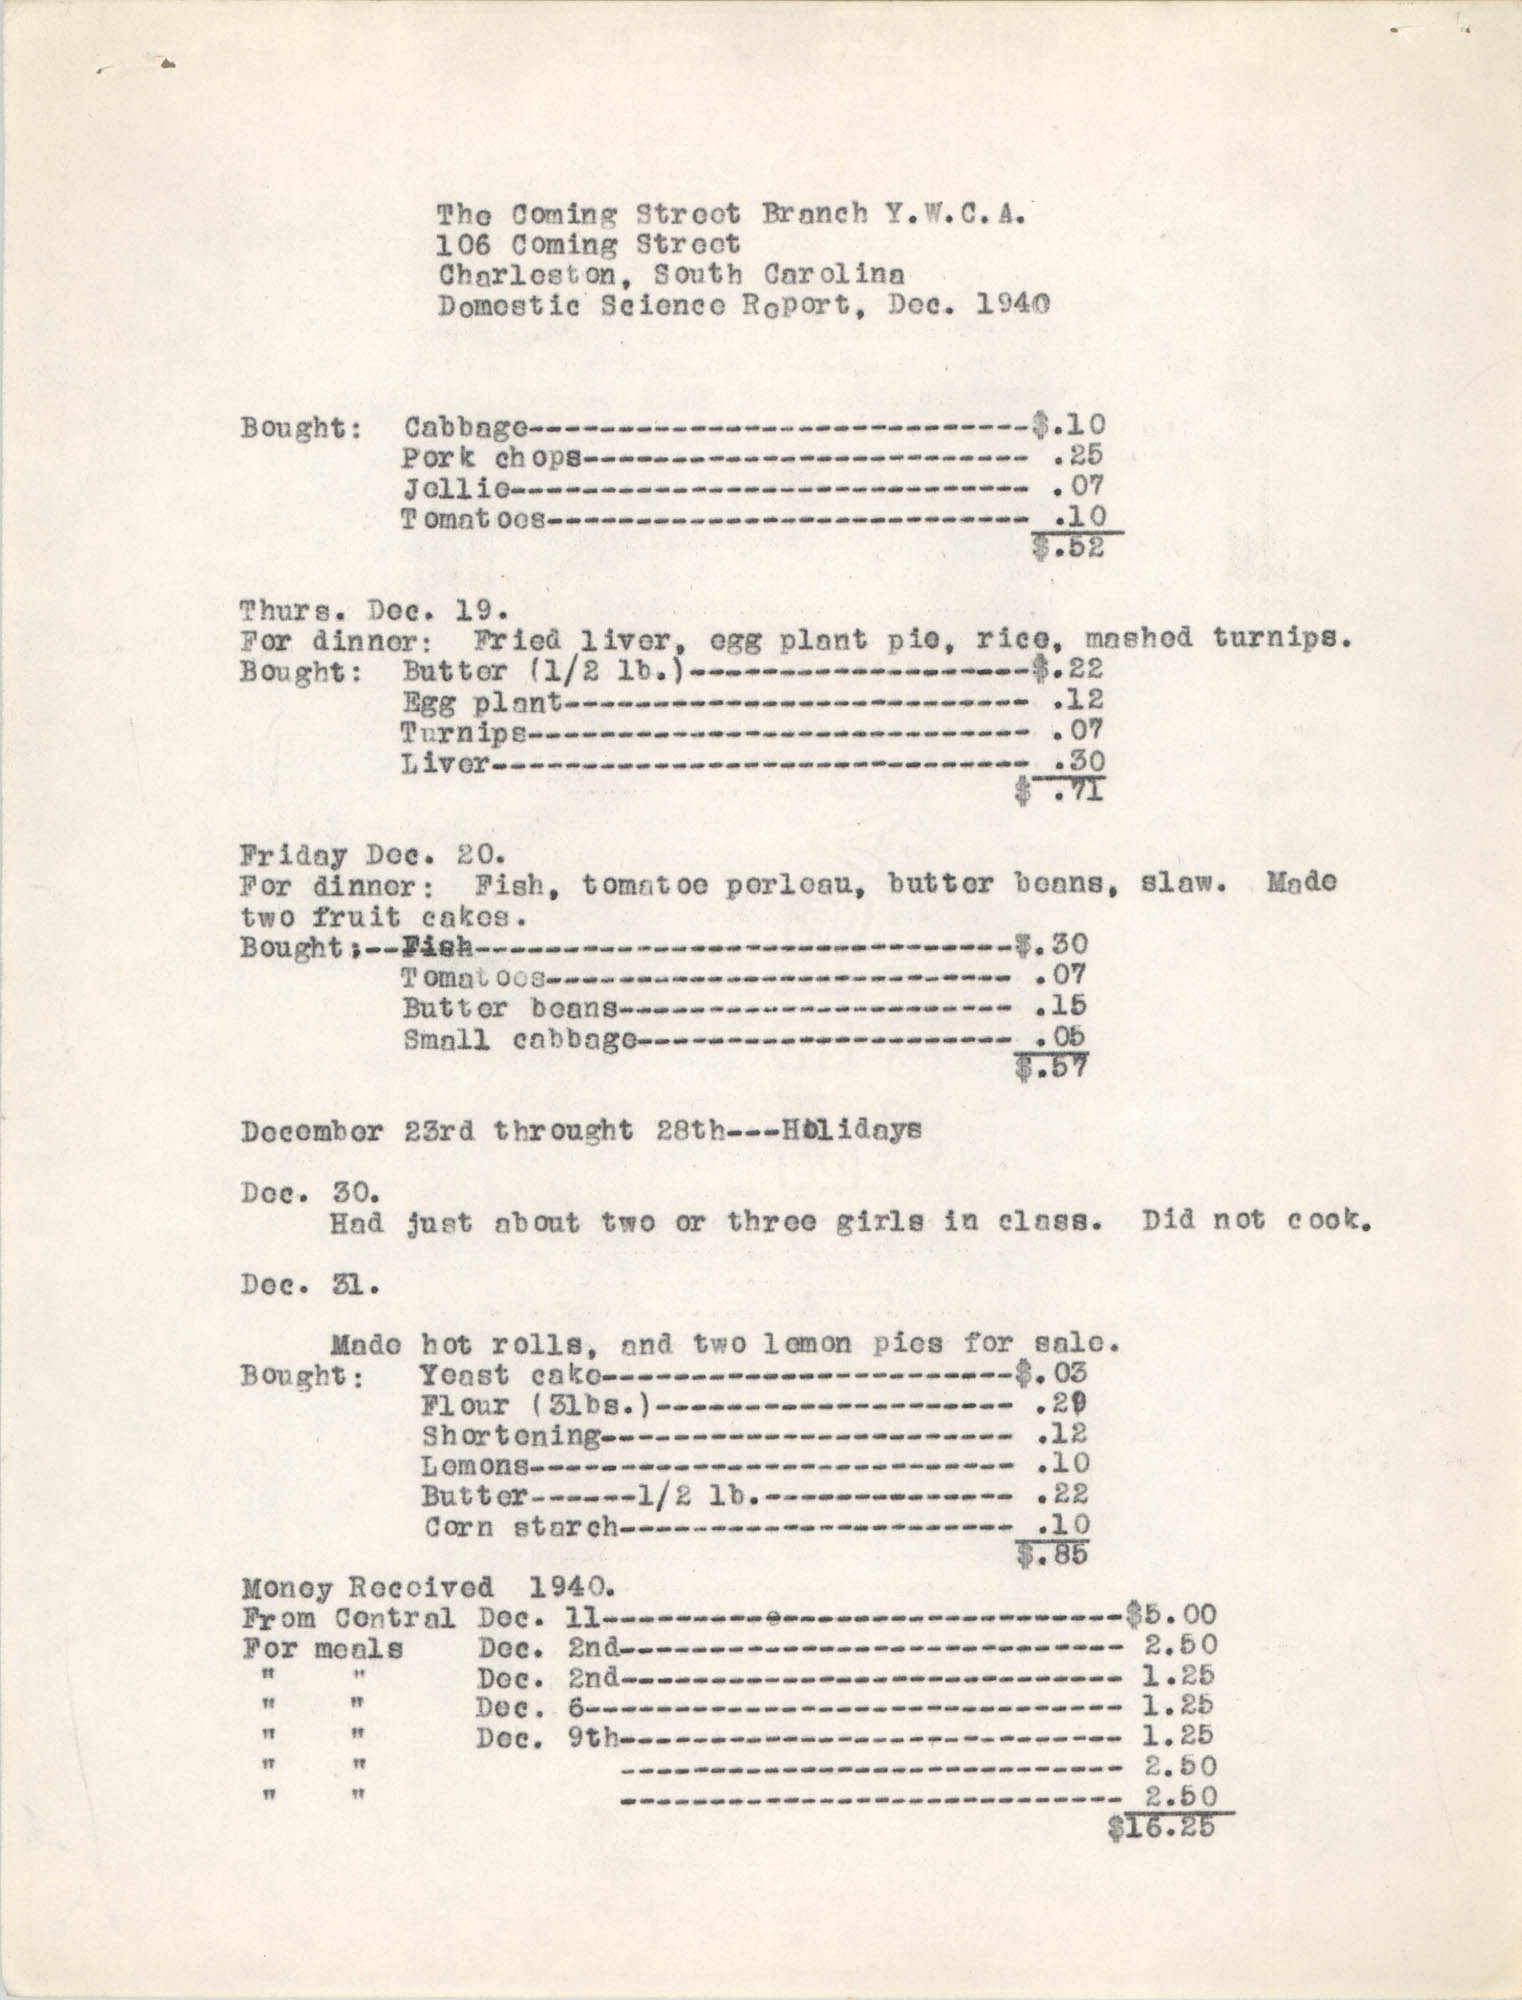 Monthly Report for the Coming Street Y.W.C.A., Domestic Science School, September 1940, Page 4